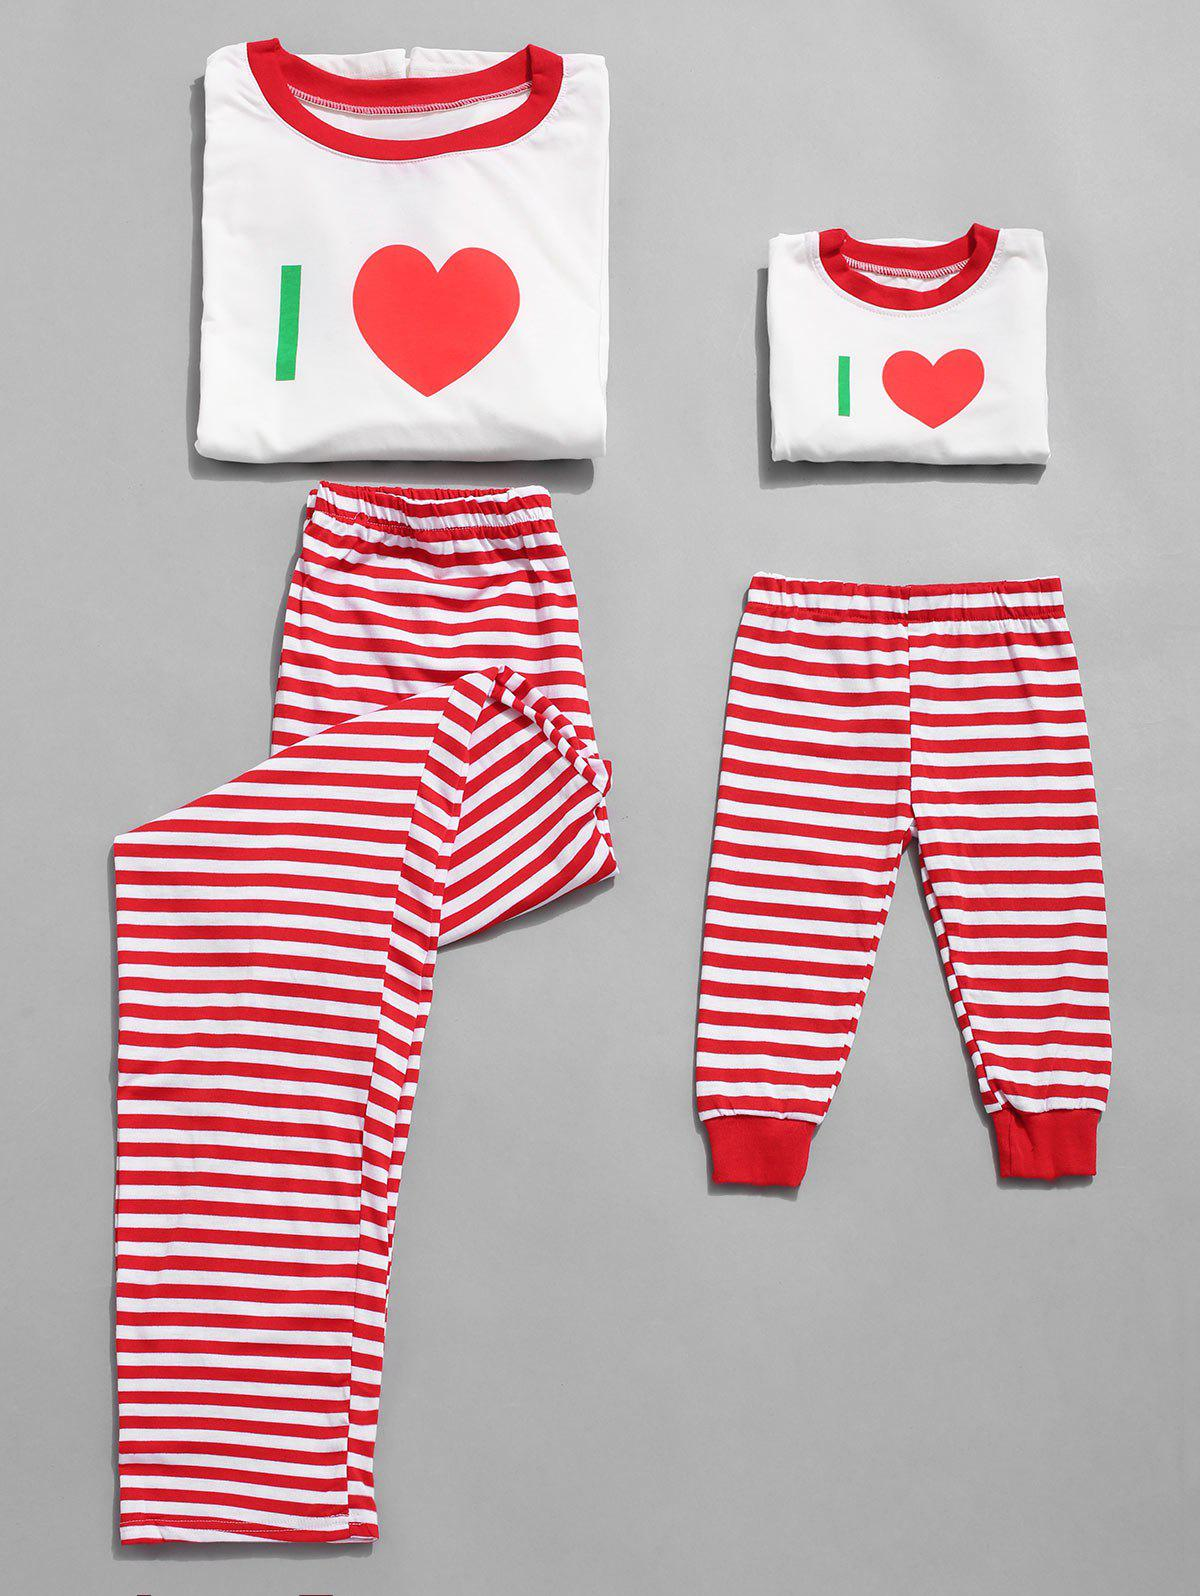 fb08007762 2019 Letter Print Plus Size Christmas Pajama Set For Mom Kids ...